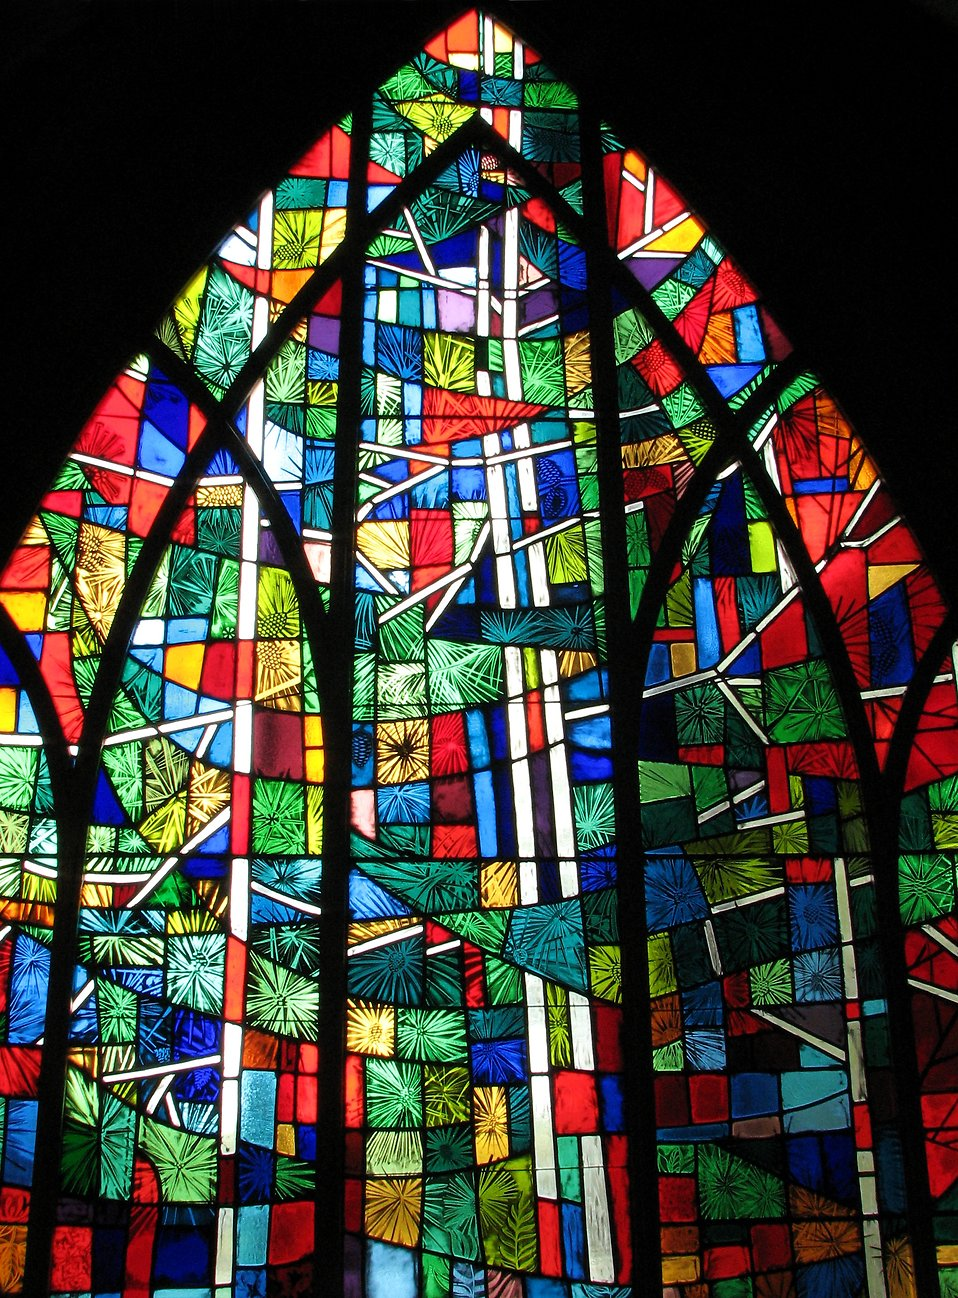 Close-up of a stained glass window.